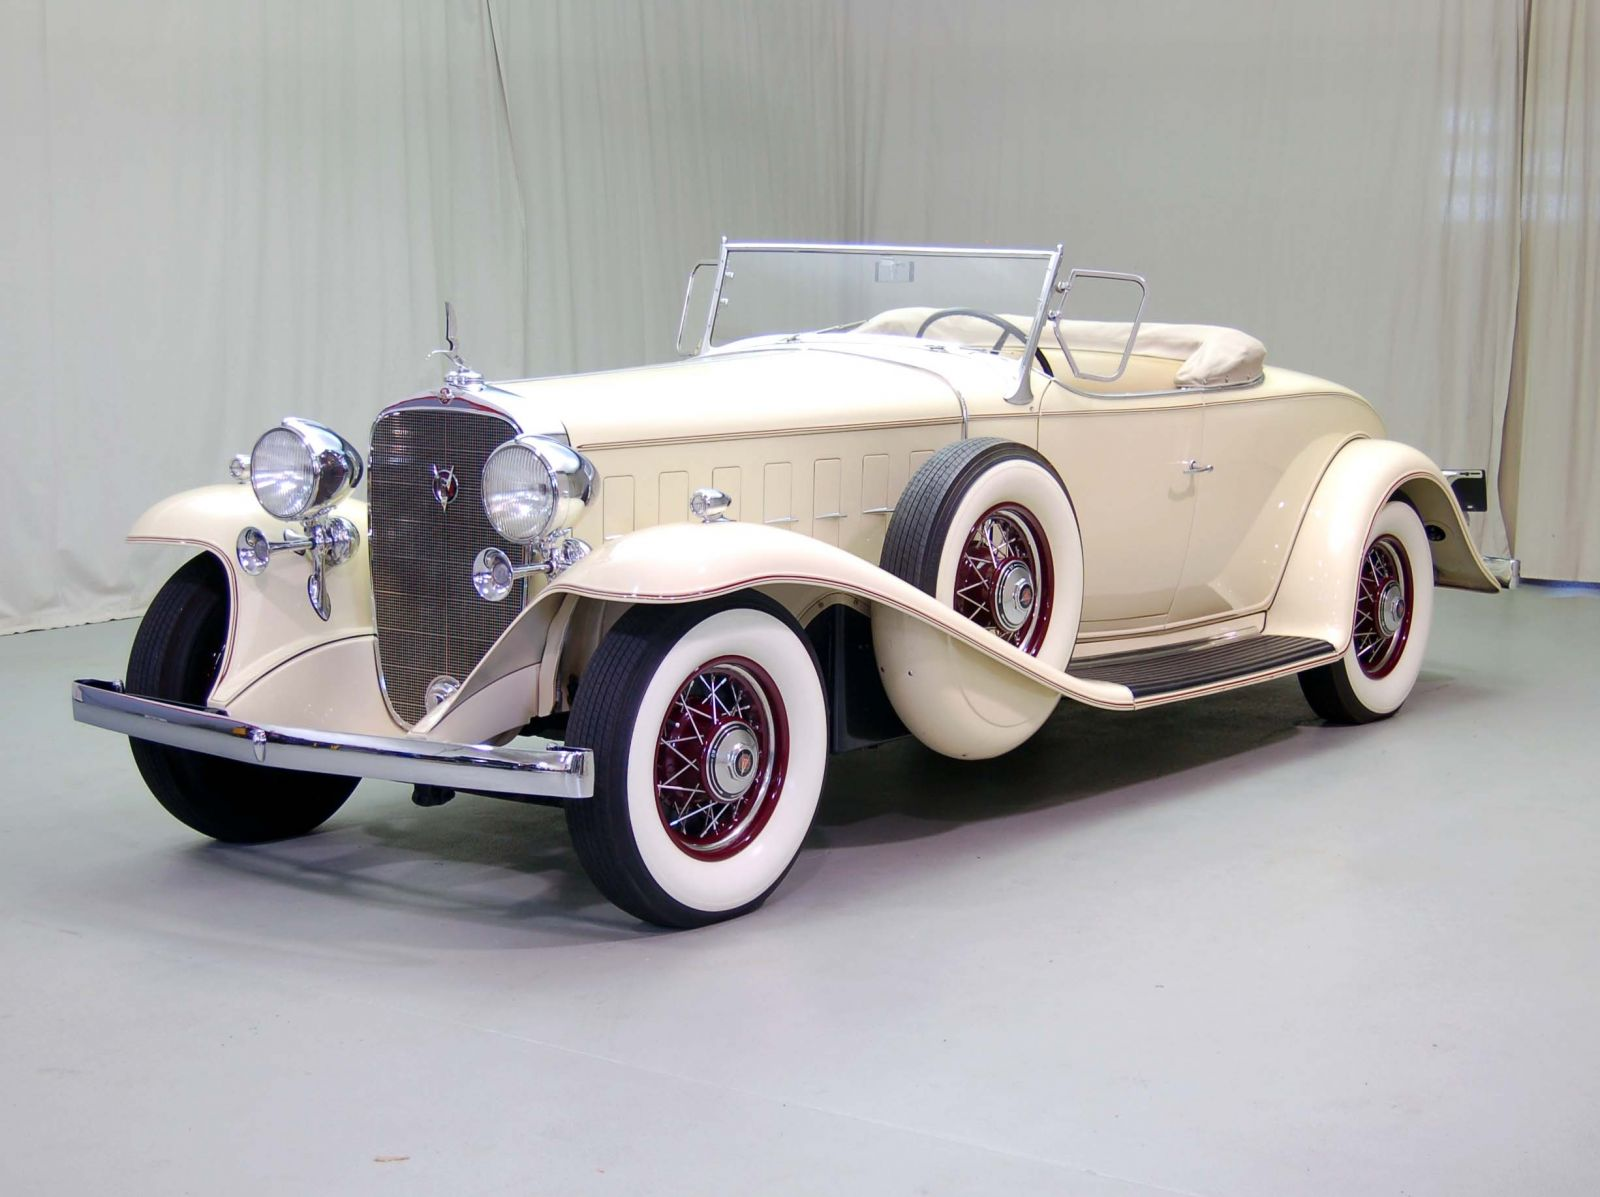 cadillac v16 convertible with 3395 1932 Cadillac V16 on 1934 Cadillac V 16 452d Convertible Sedan together with 561683384752834611 additionally Photos additionally Honderd En Tien Jaar Cadillac additionally 2018 Tesla Roadster Sport New Price Reviews Info.